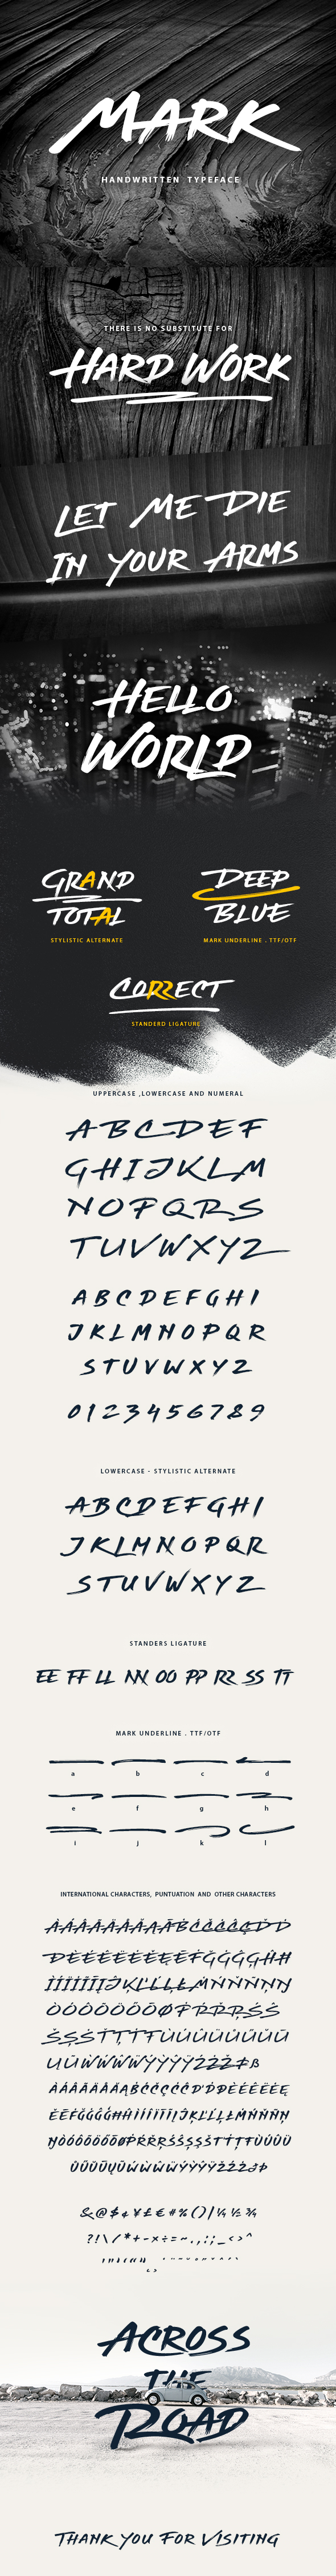 Mark Handwritten Graffiti Font - Handwriting Fonts